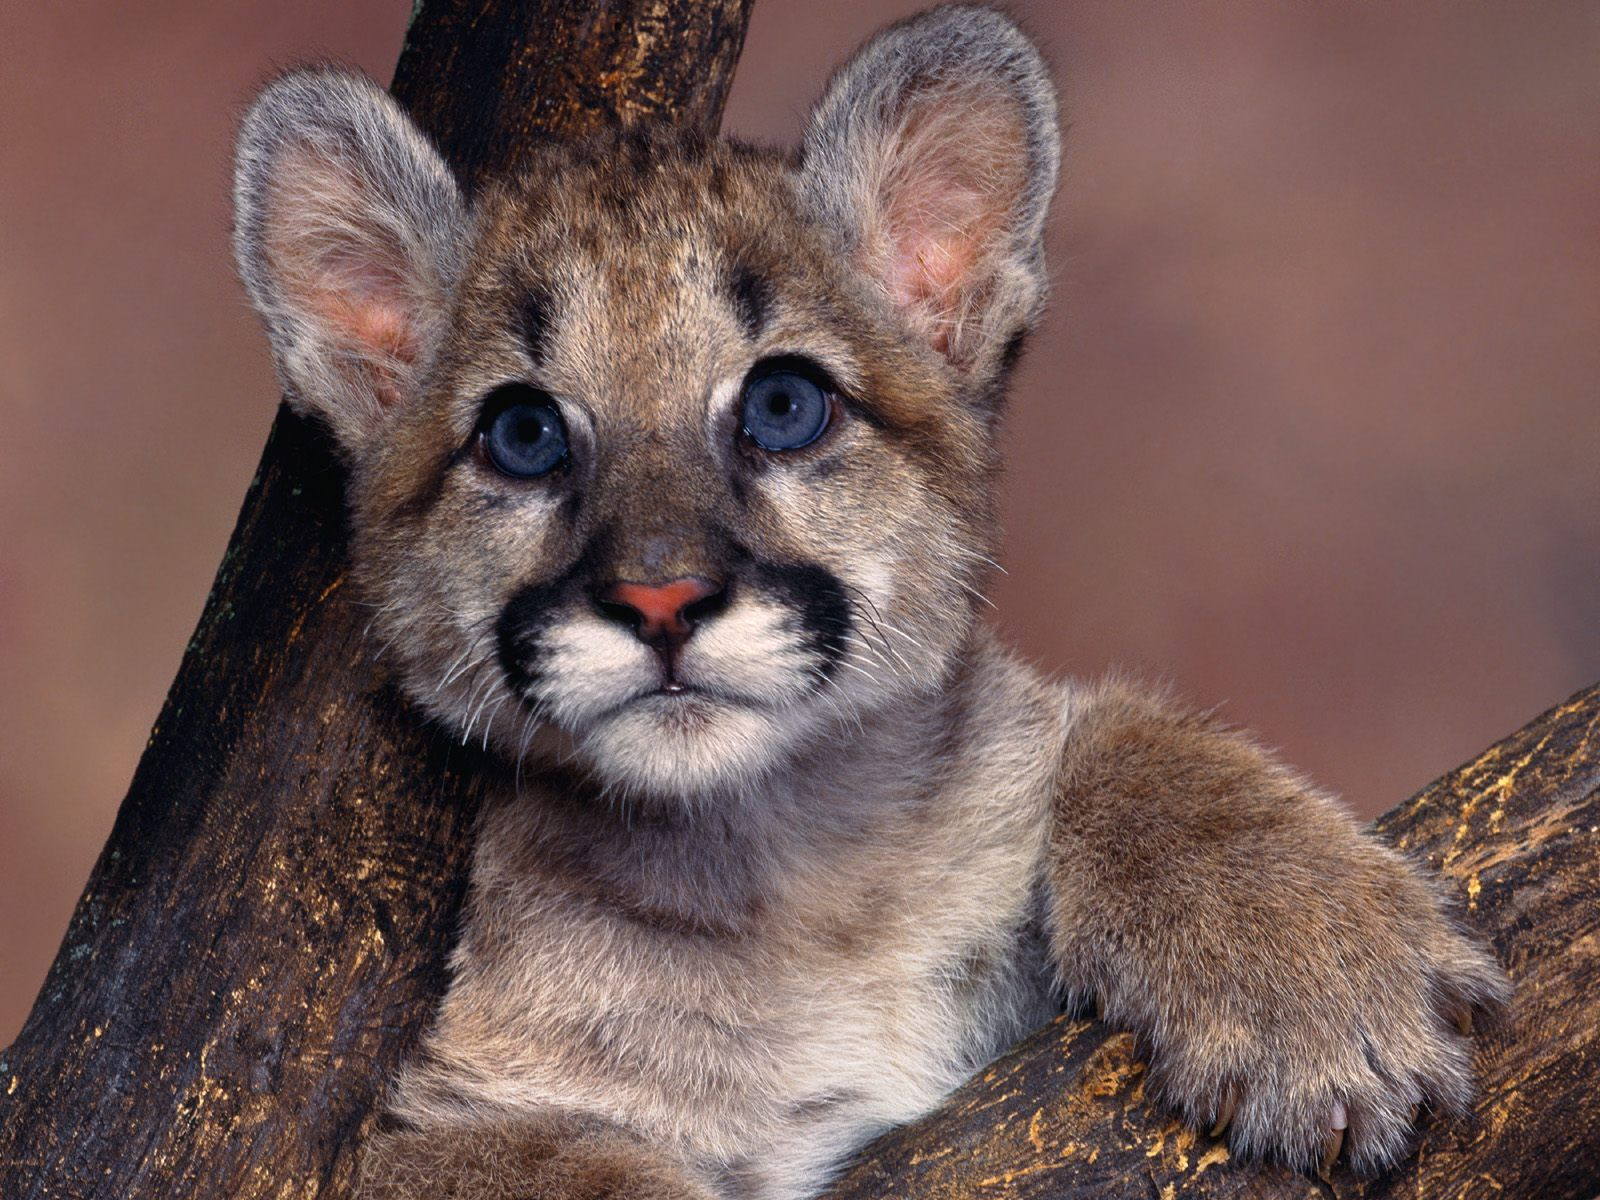 baby cougar | Animals | Pinterest | Mountain lion, Eyes and Baby cats